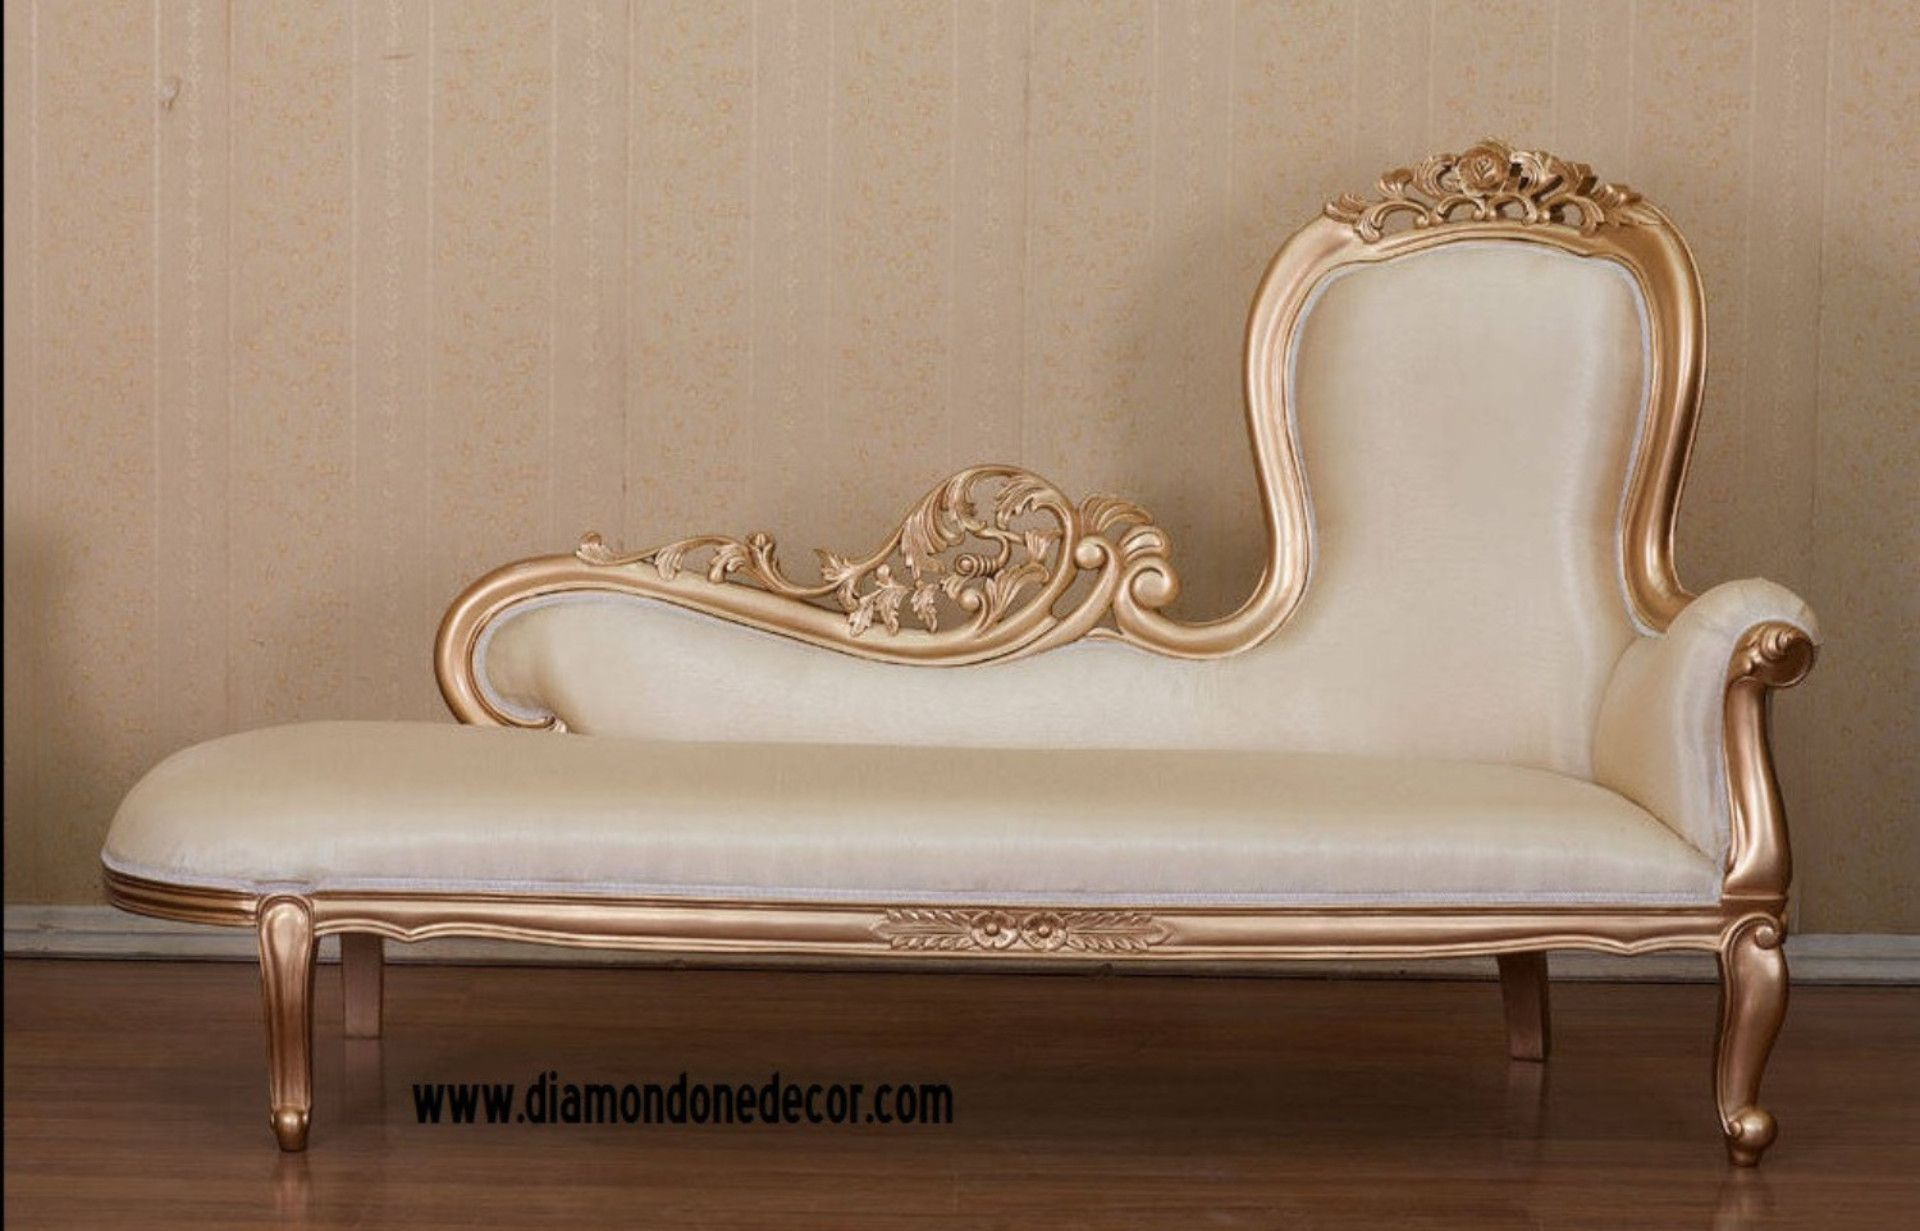 Baroque Sofa Uk Decorative Throw Pillows For French Reproduction Louis Xvi Style Fainting Couch